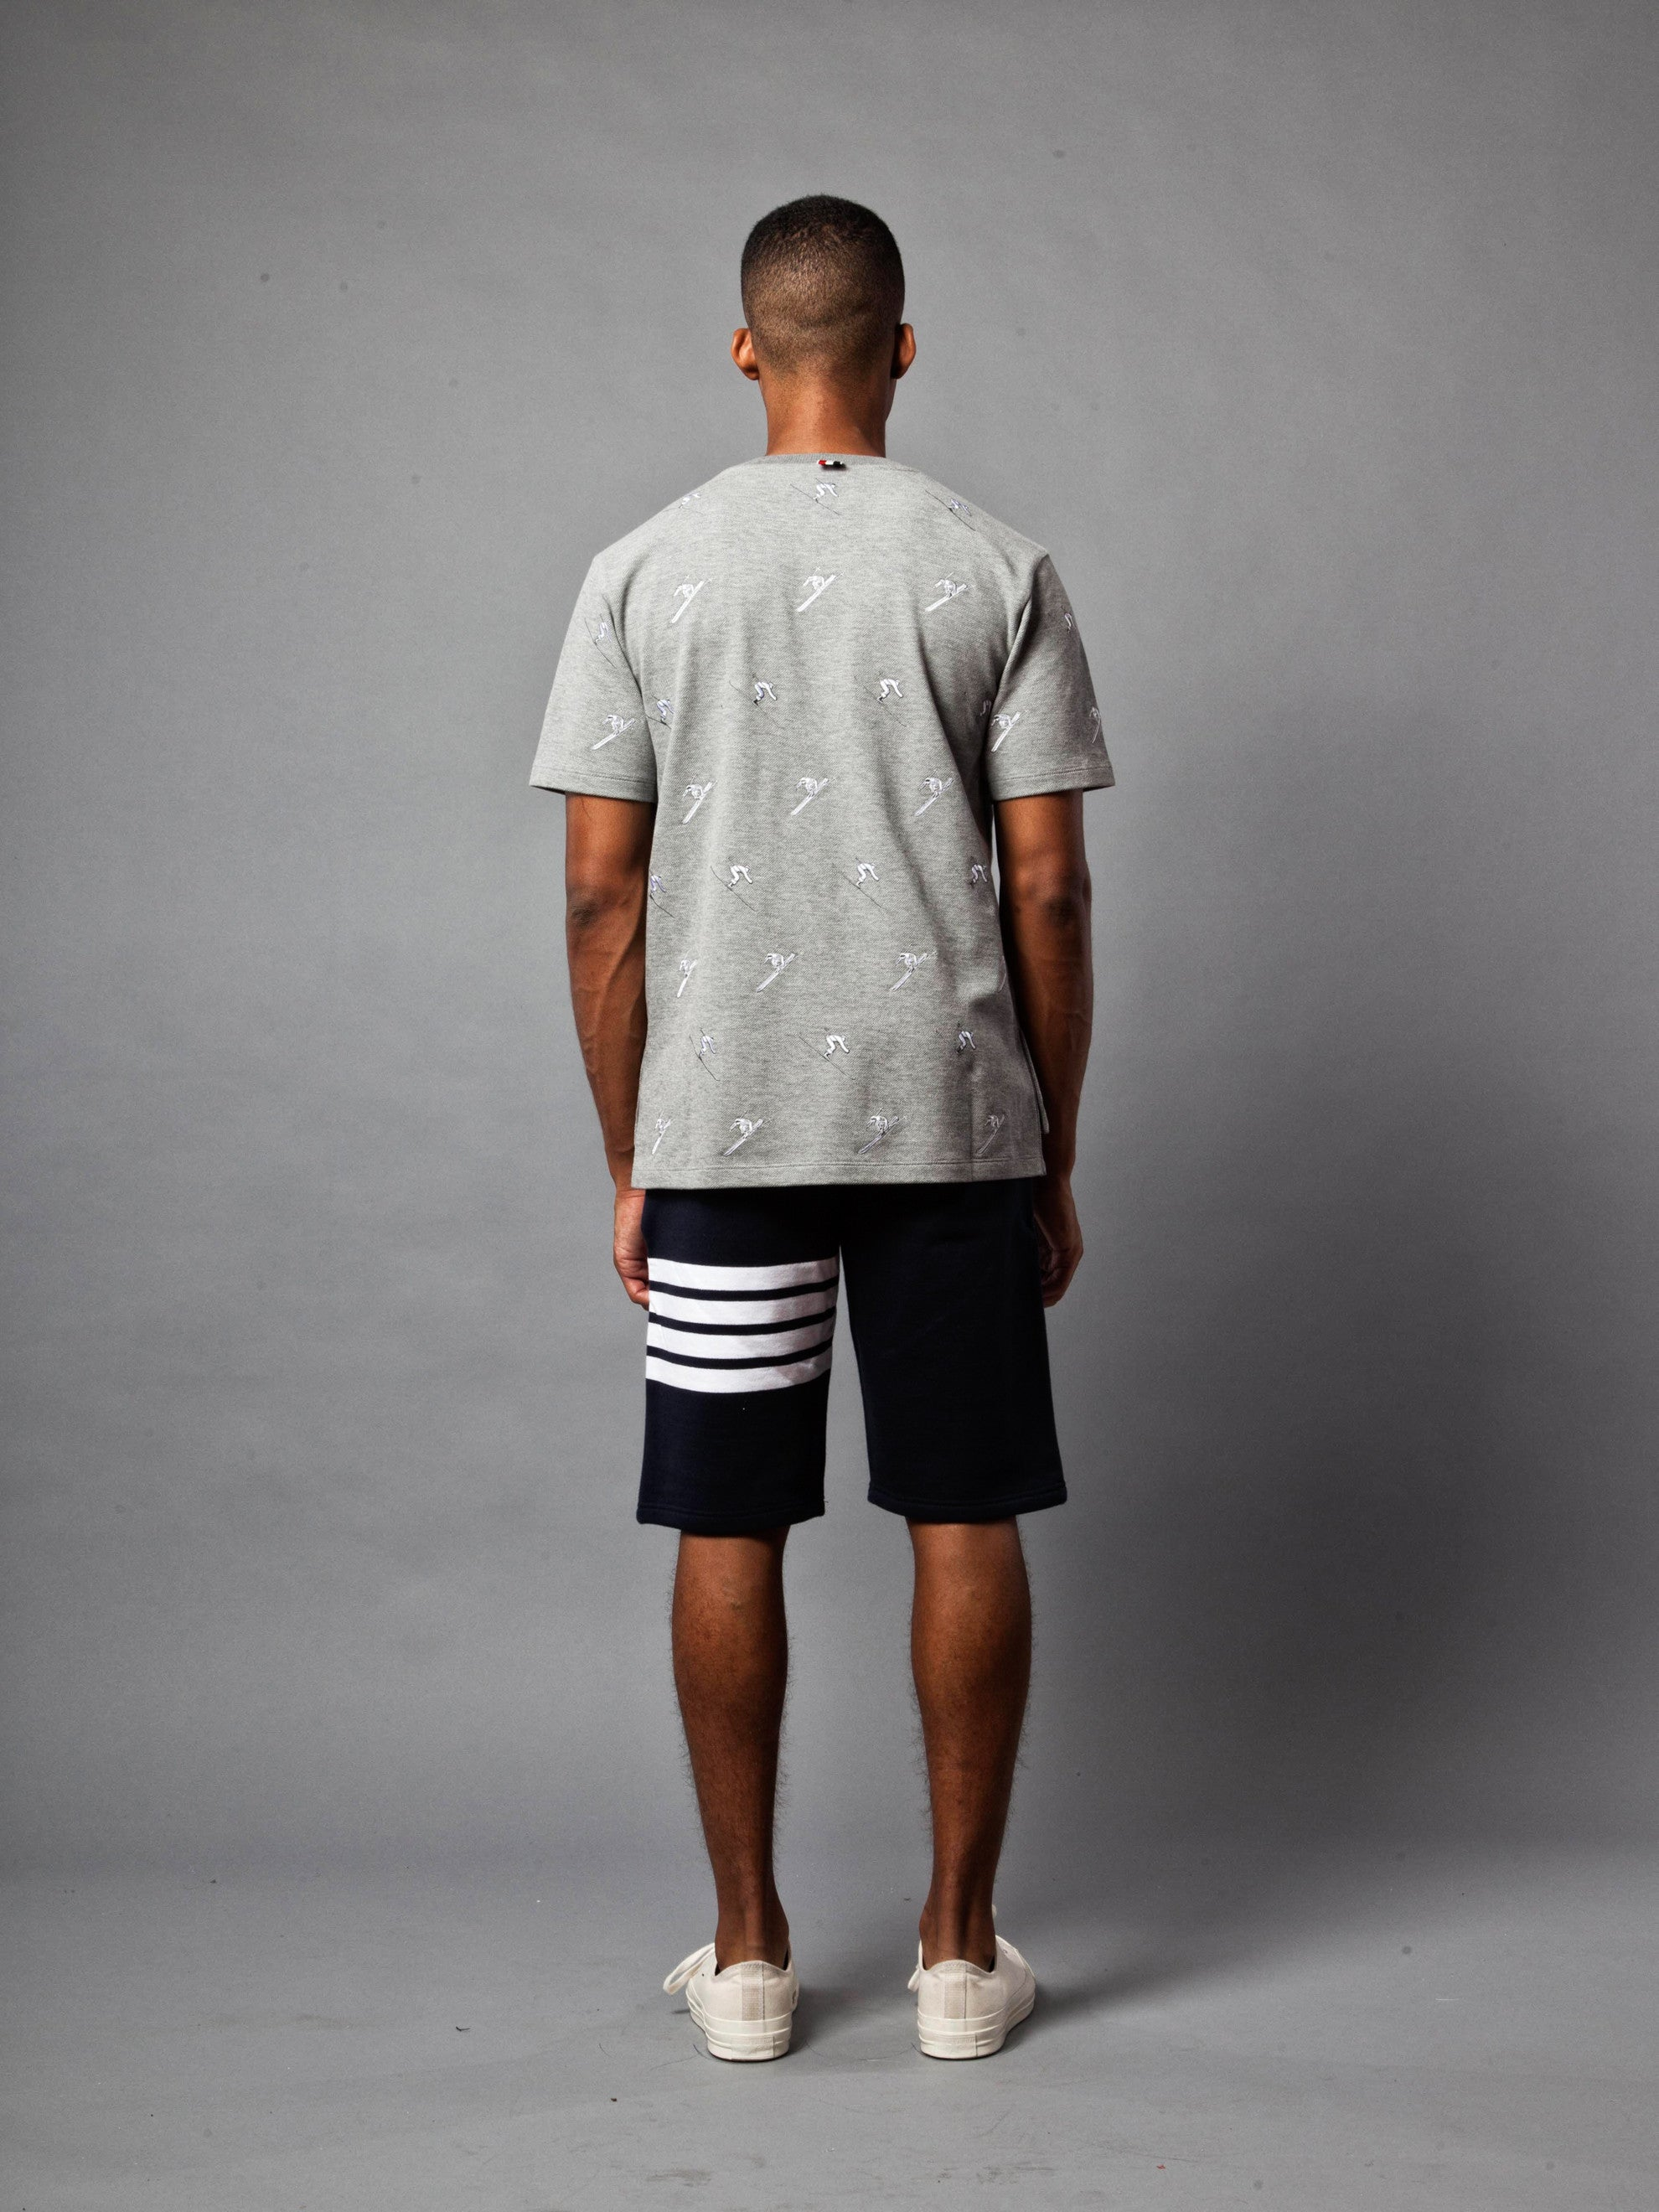 Light Grey SS Rib Crew Neck Tee (Classic Pique W/ Allover Skier Embroidery) 5